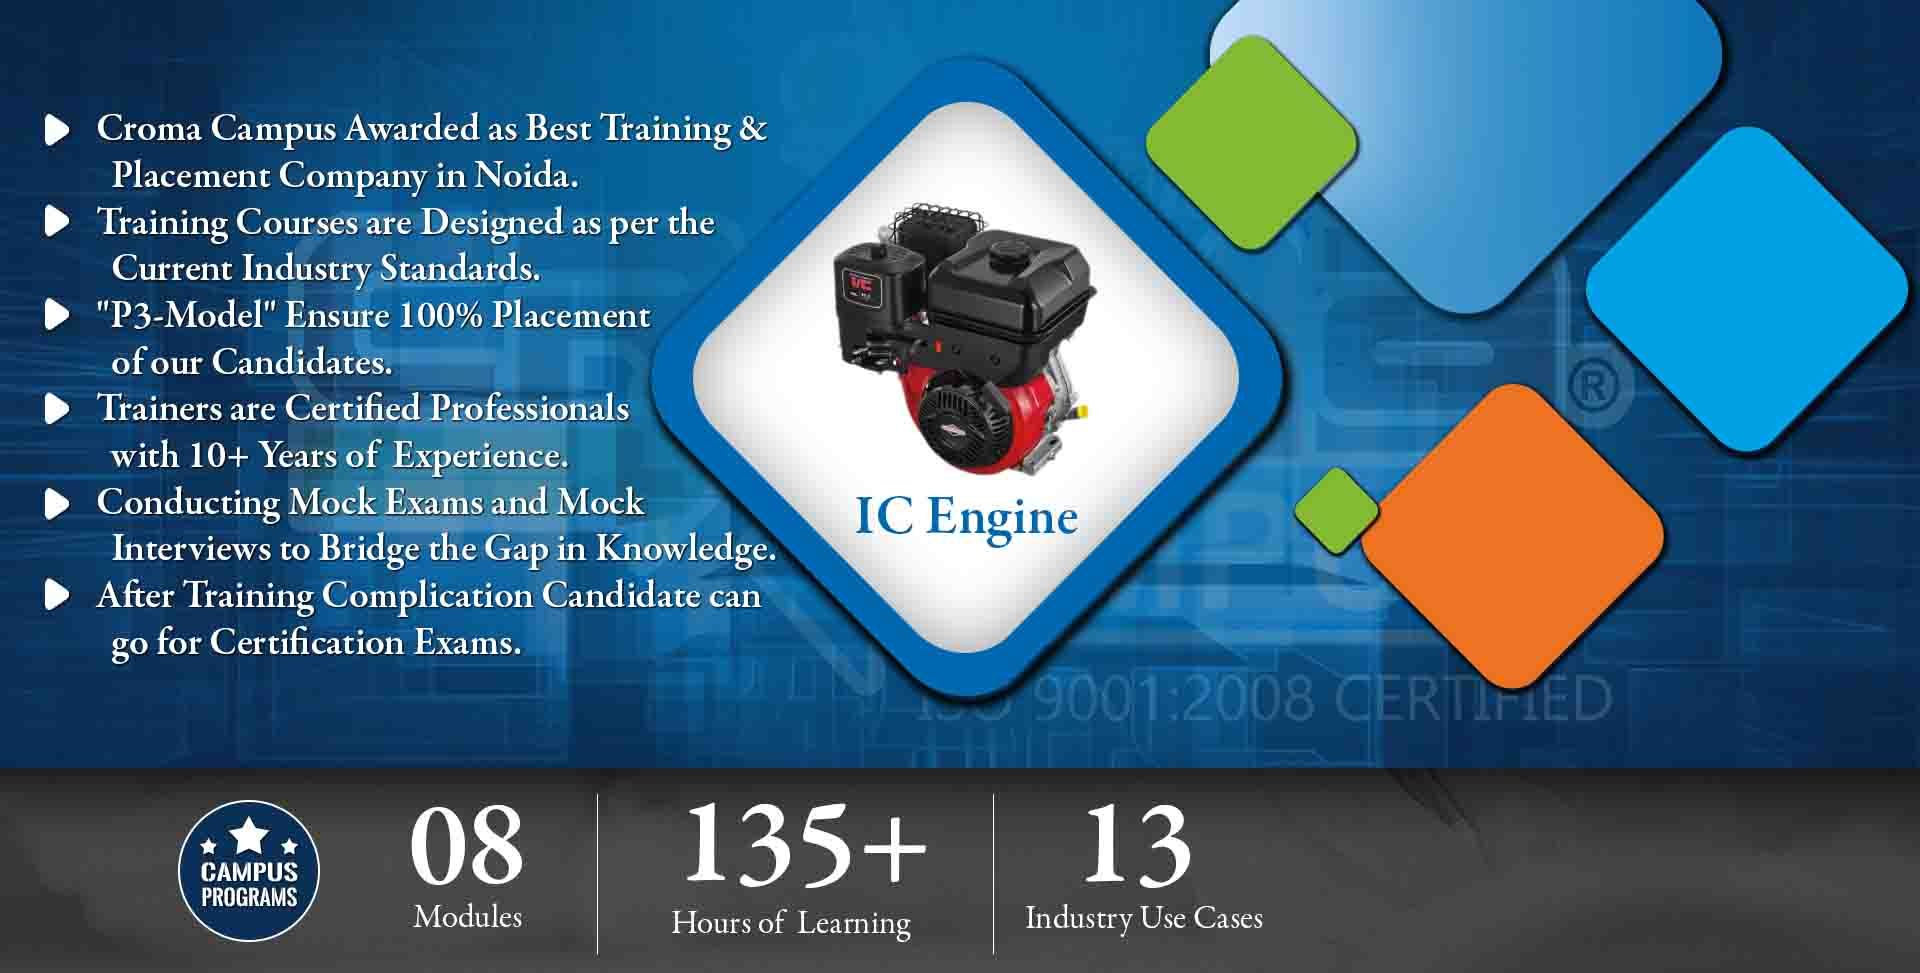 IC Engine Training in Noida- Croma Campus